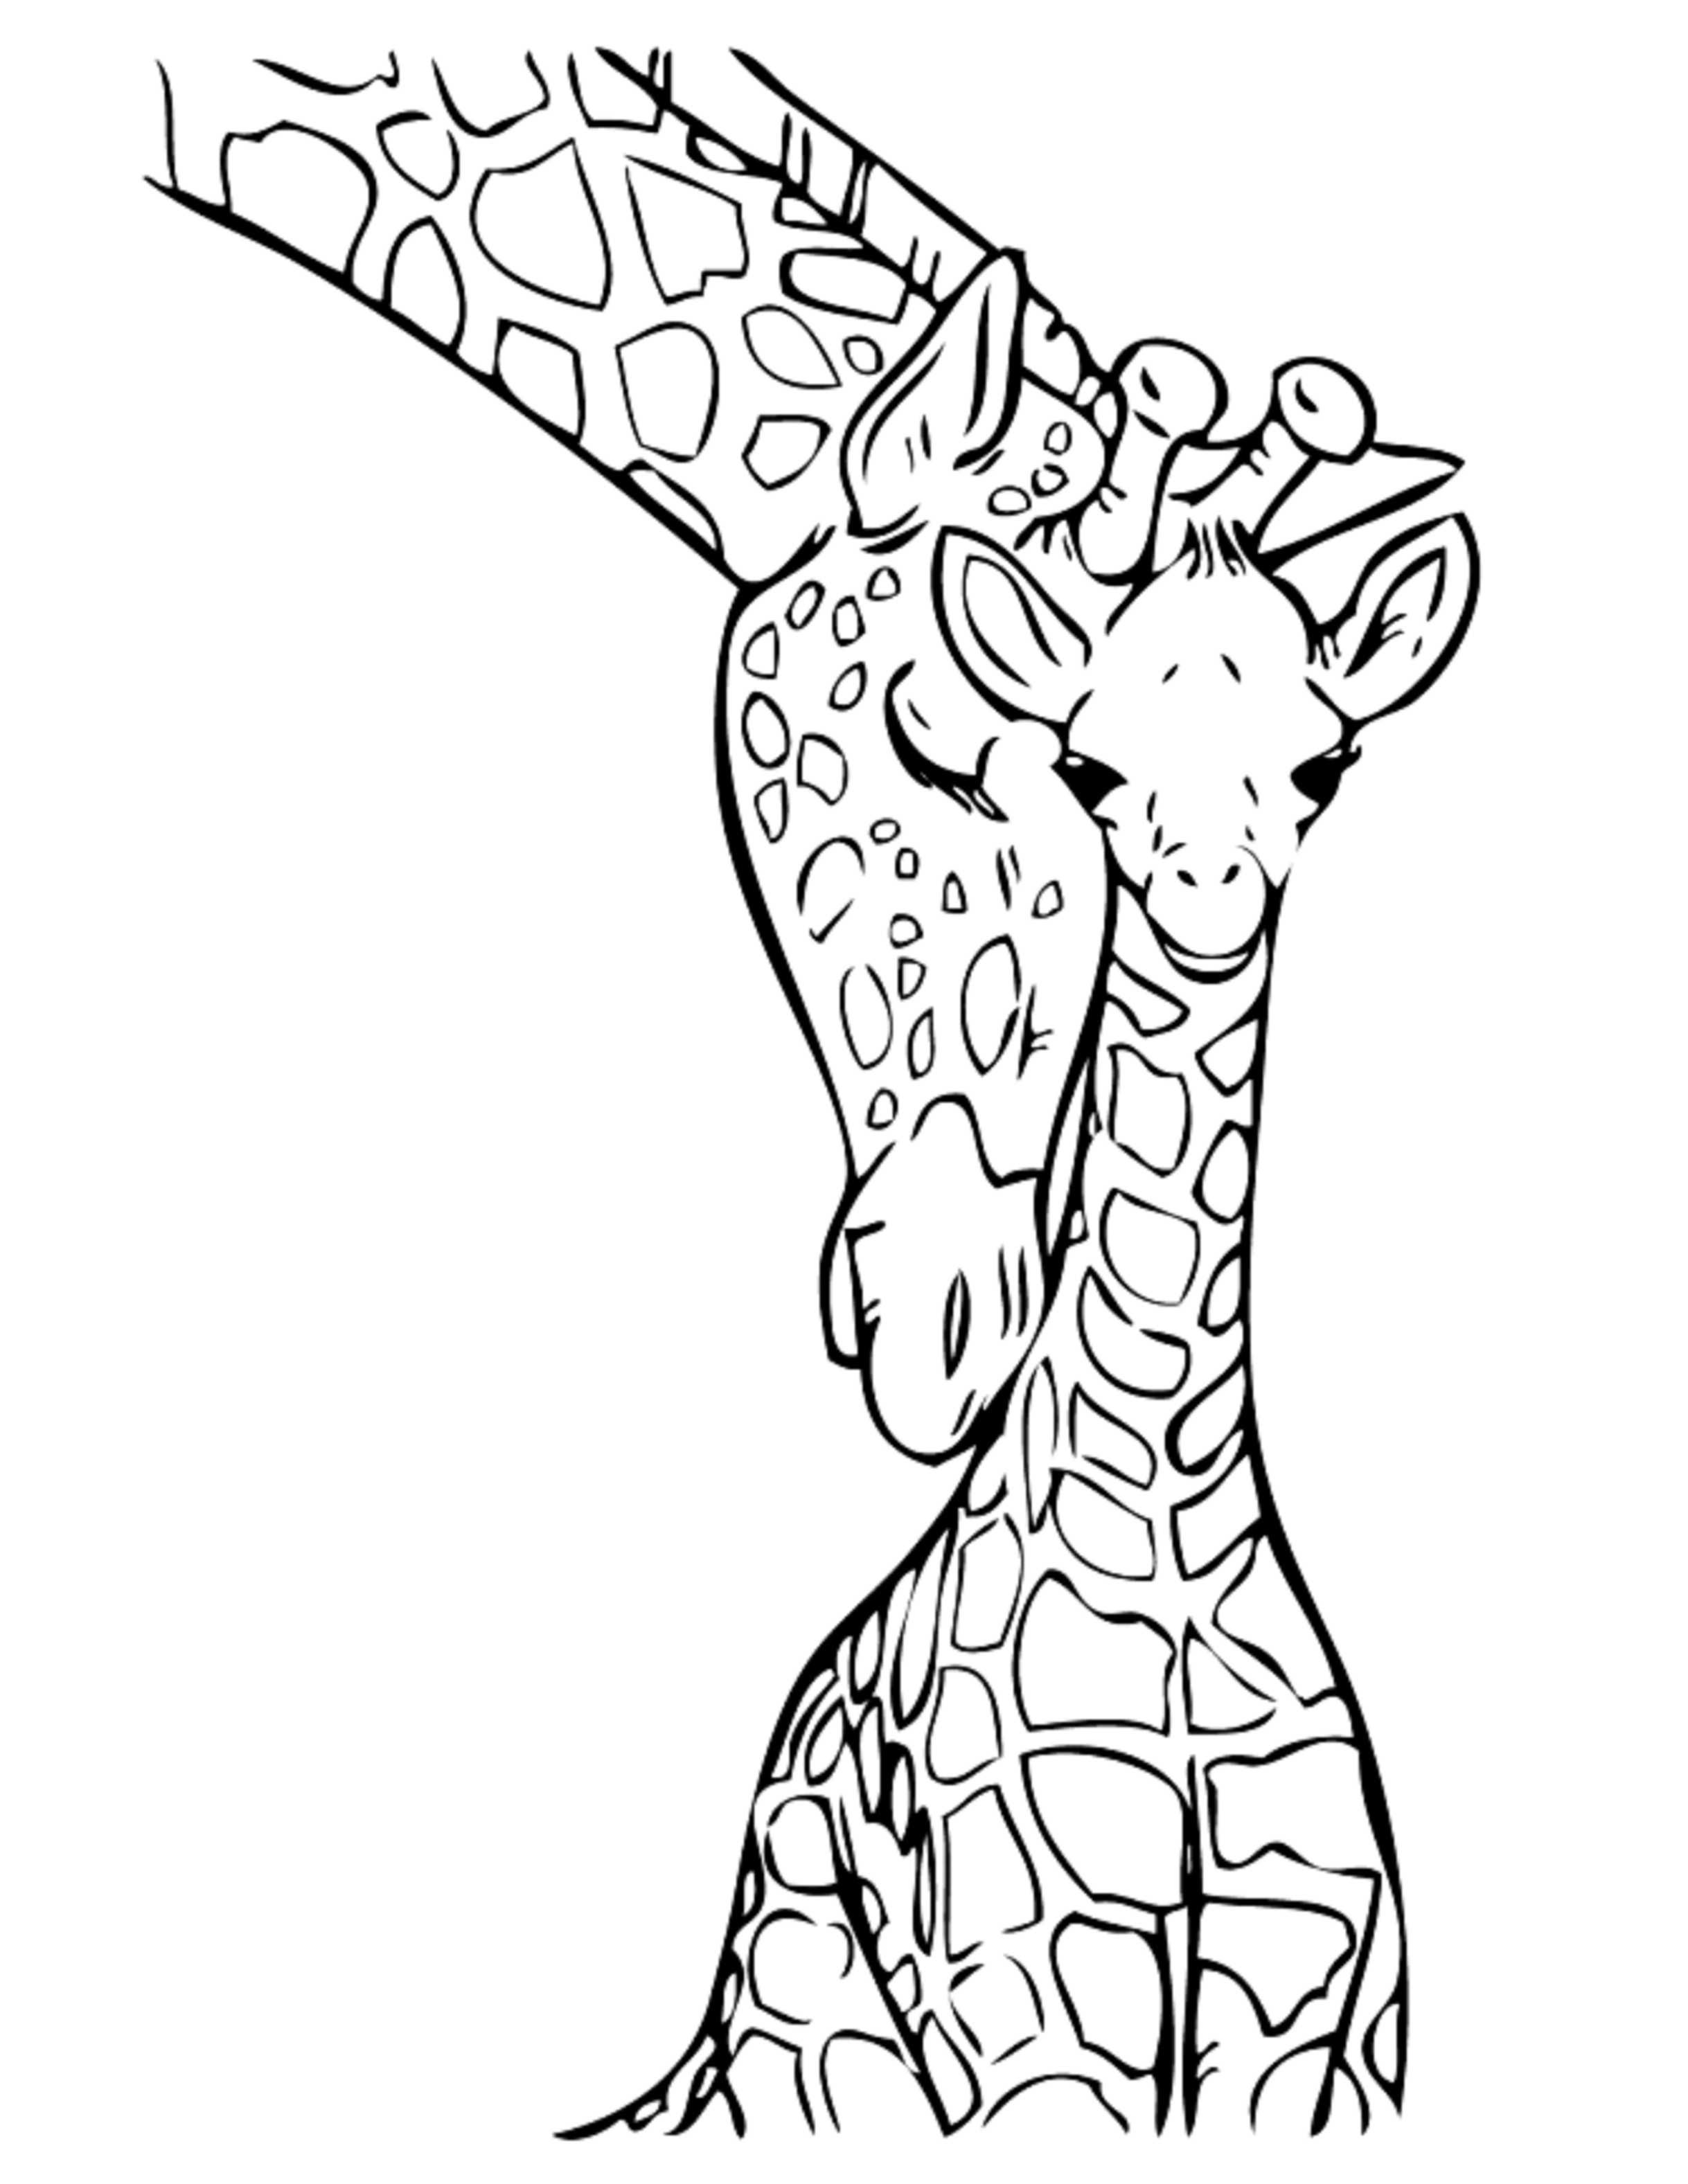 coloring pages of giraffes Giraffe Coloring Pages | Giraffe Coloring Pages Printable  coloring pages of giraffes